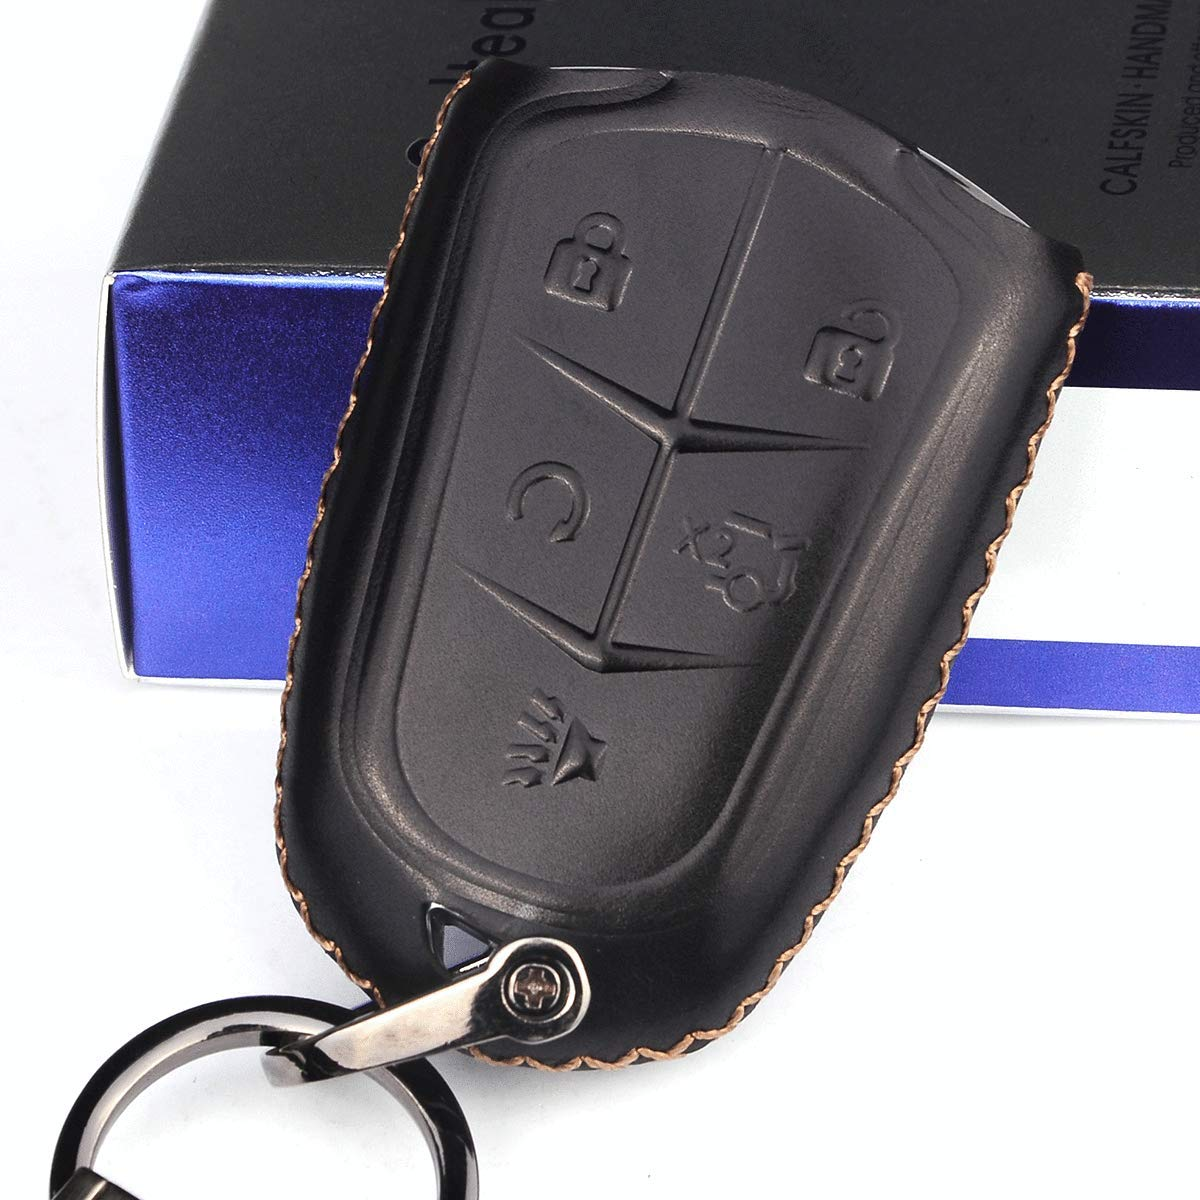 MECHCOS Compatible with 2015-2018 Cadillac Escalade Leather Remote Key fob Cover Leather fit for Cadillac Escalade Key fob case Holder only for 6 Buttons Black Color